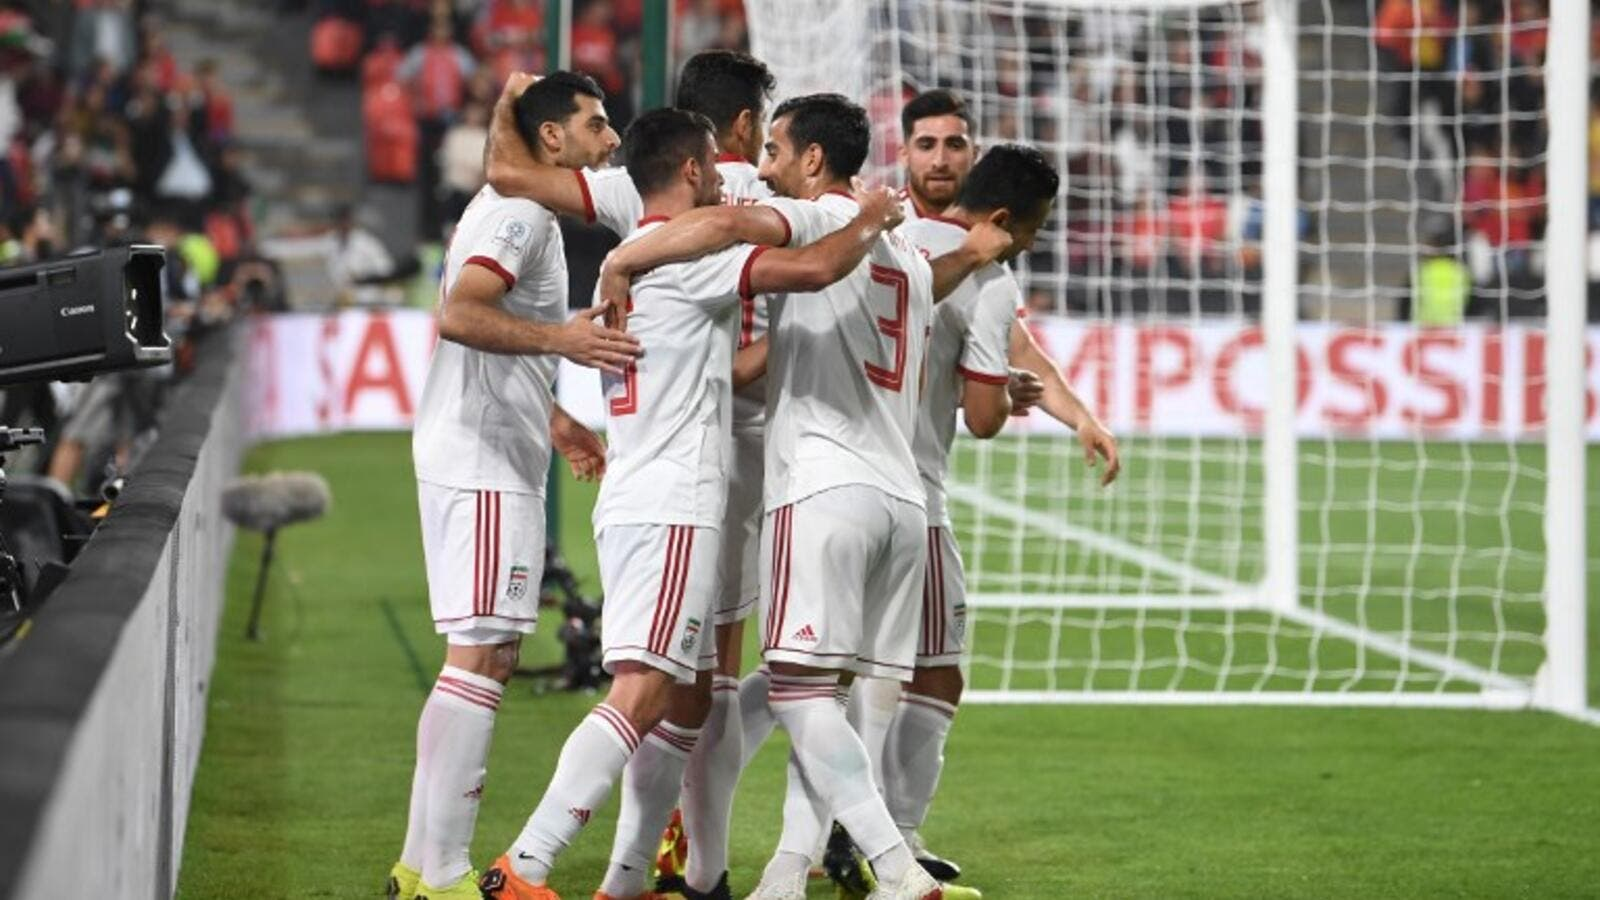 Iran's players celebrate their opening goal during the 2019 AFC Asian Cup quarter-final football match between China and Iran at the Mohammed Bin Zayed Stadium Stadium in Abu Dhabi on January 24, 2019.